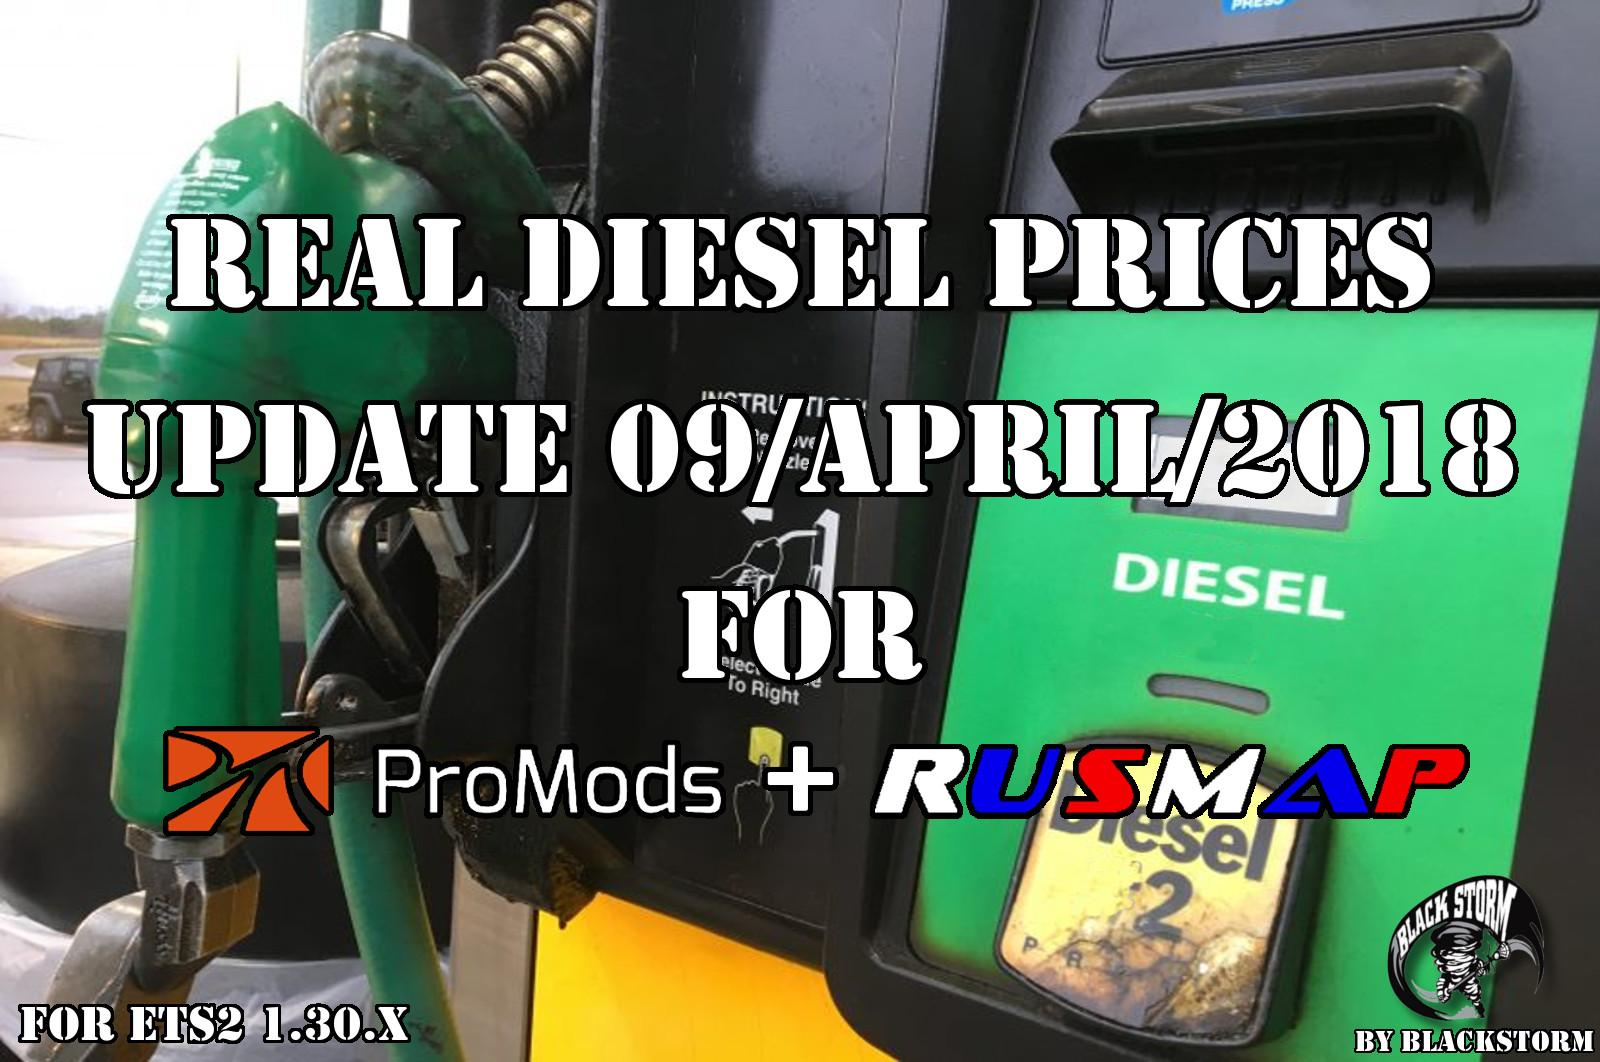 Real Diesel Prices Promods Map 2 26 & RusMap v1 8 ETS2 - Euro Truck